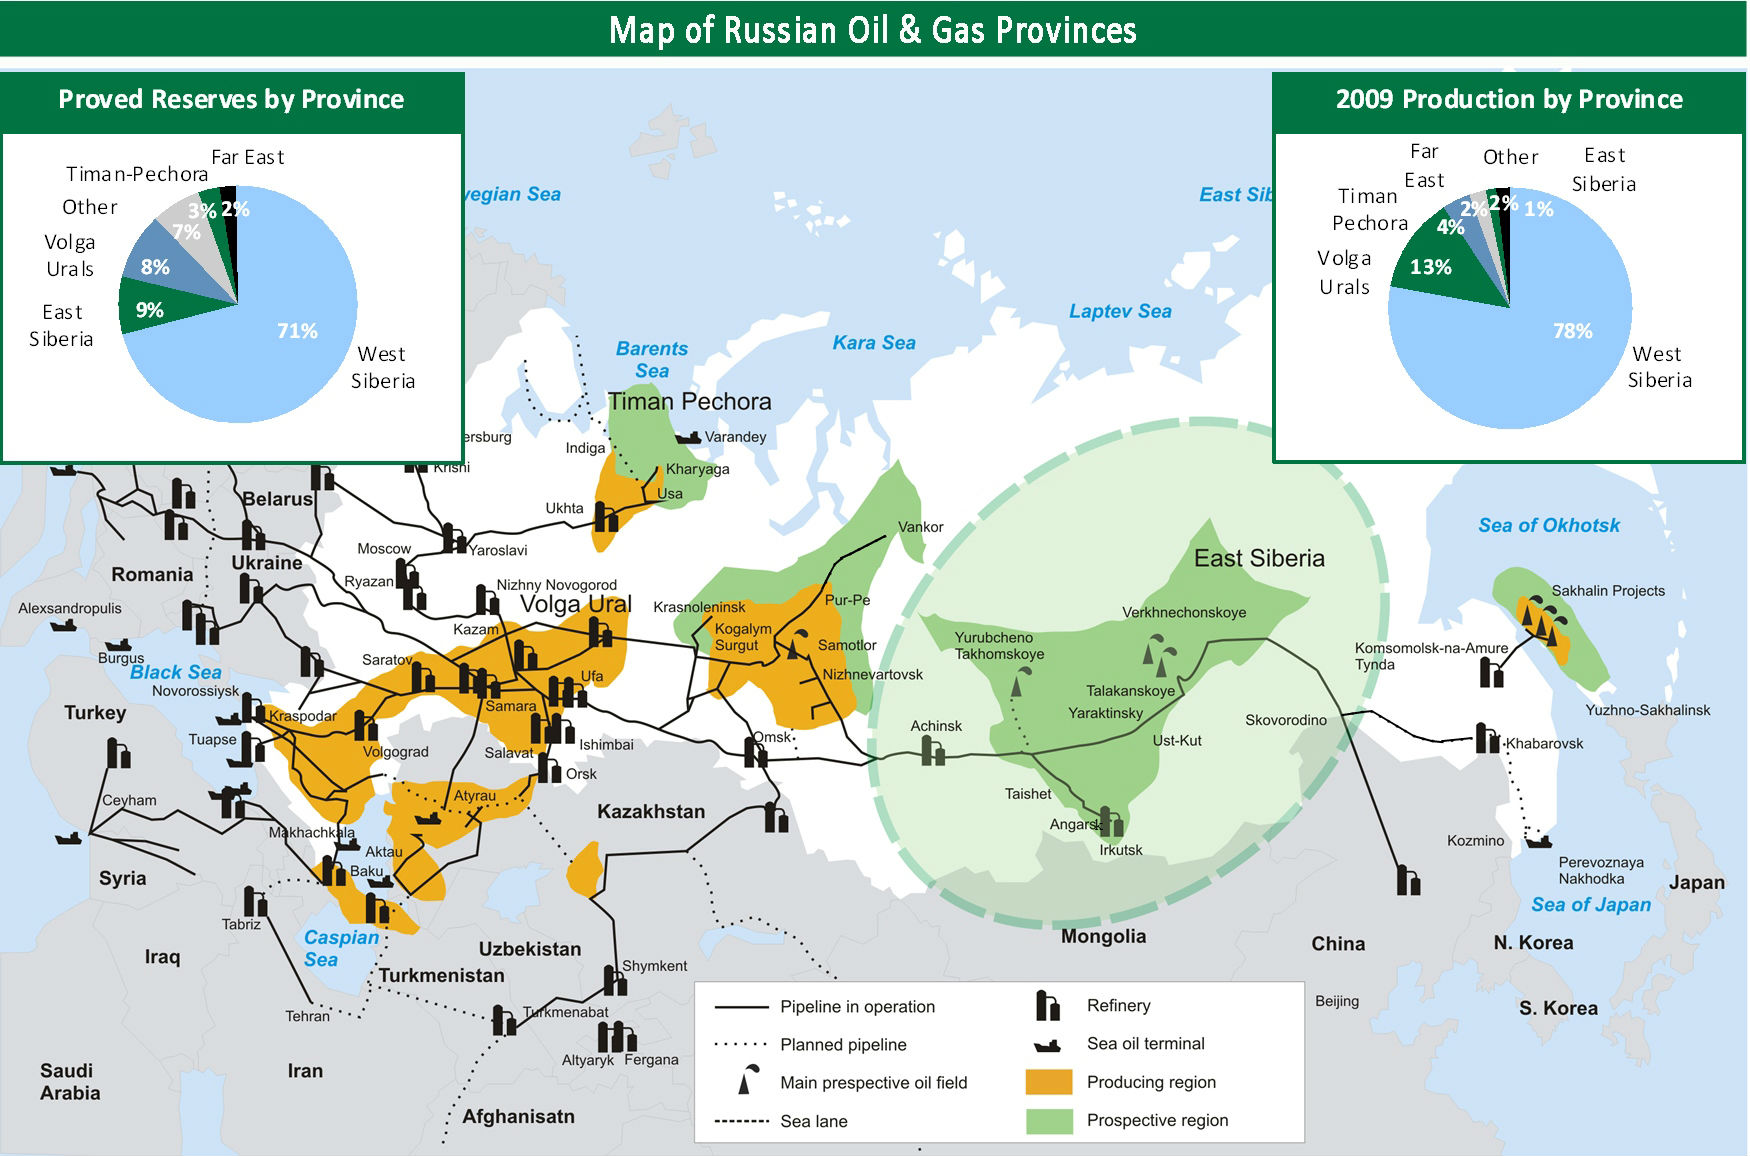 East Siberia Oil and Gas Provinces